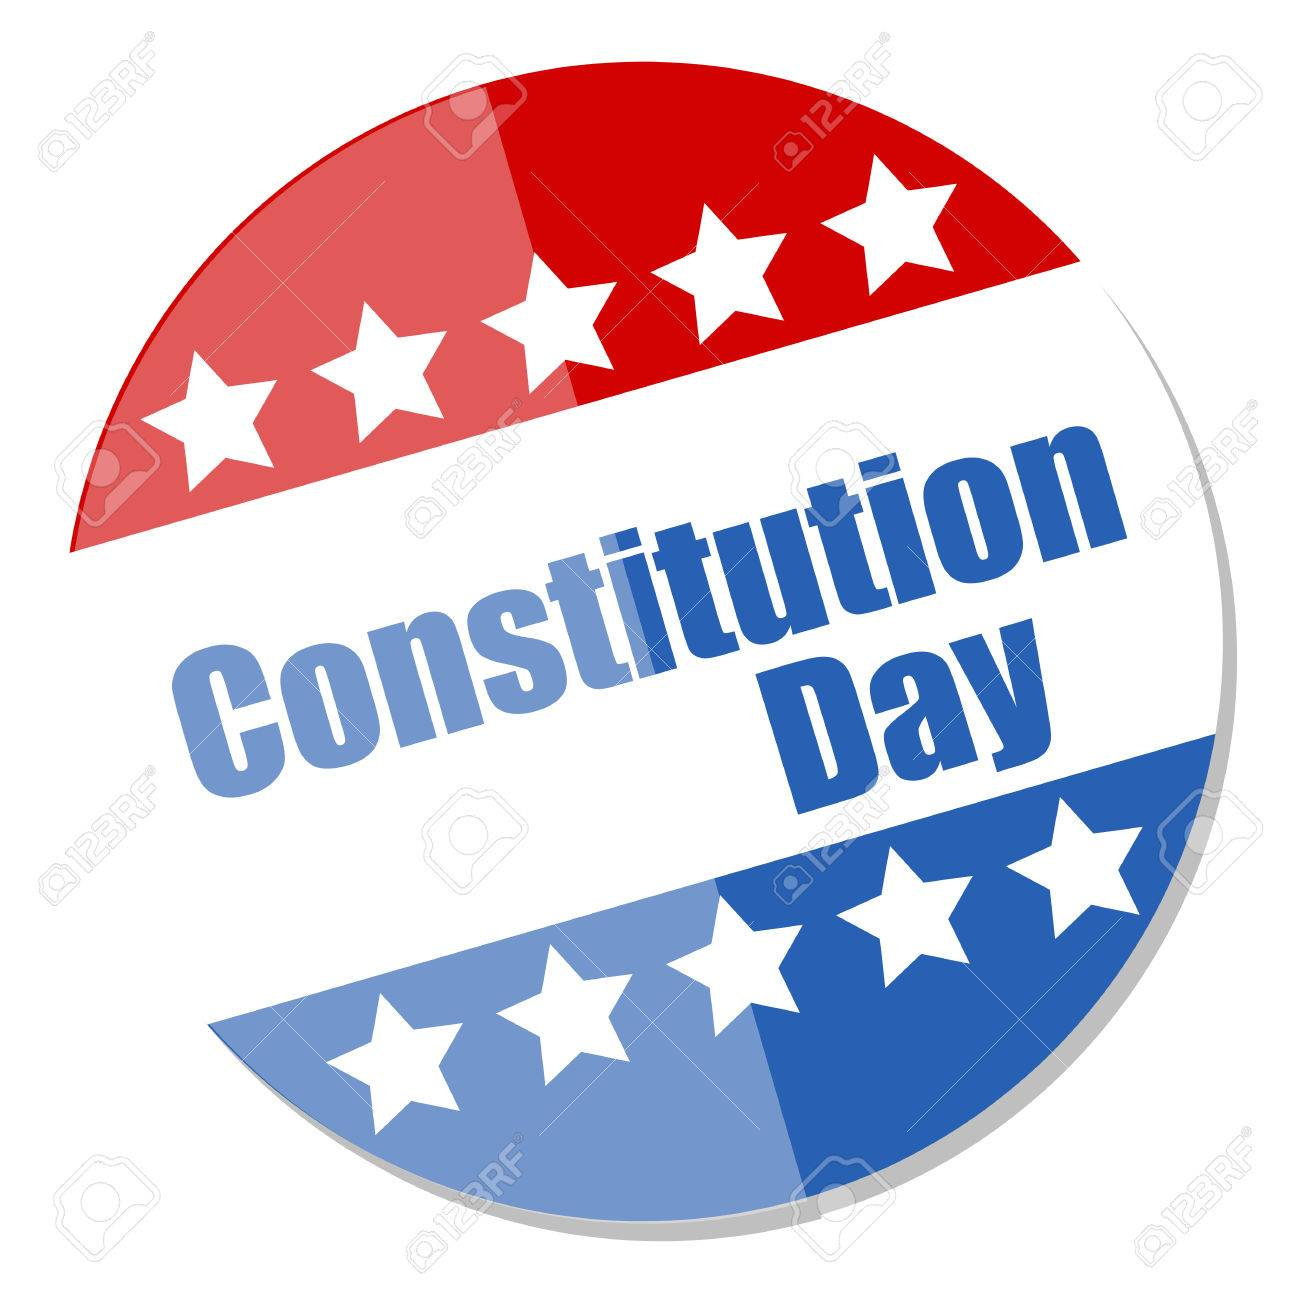 Voting Badge style - Constitution Day Vector Illustration Stock Vector - 22318585